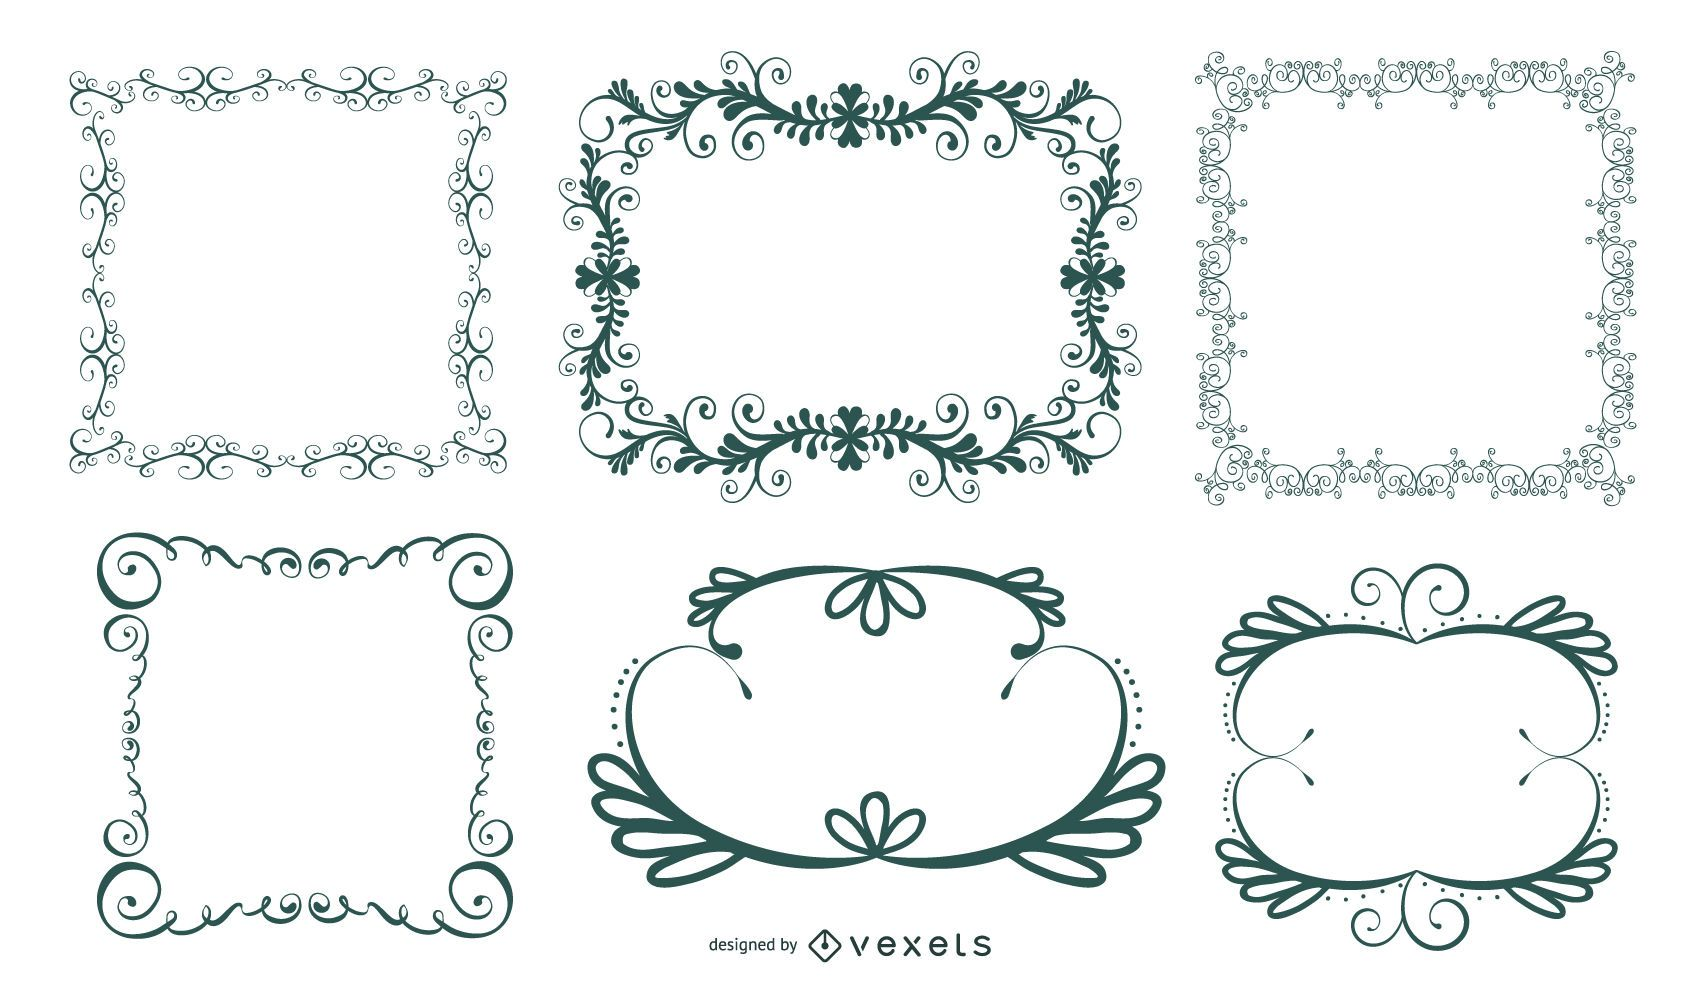 Ornamental Floral and Swirly Frame Set